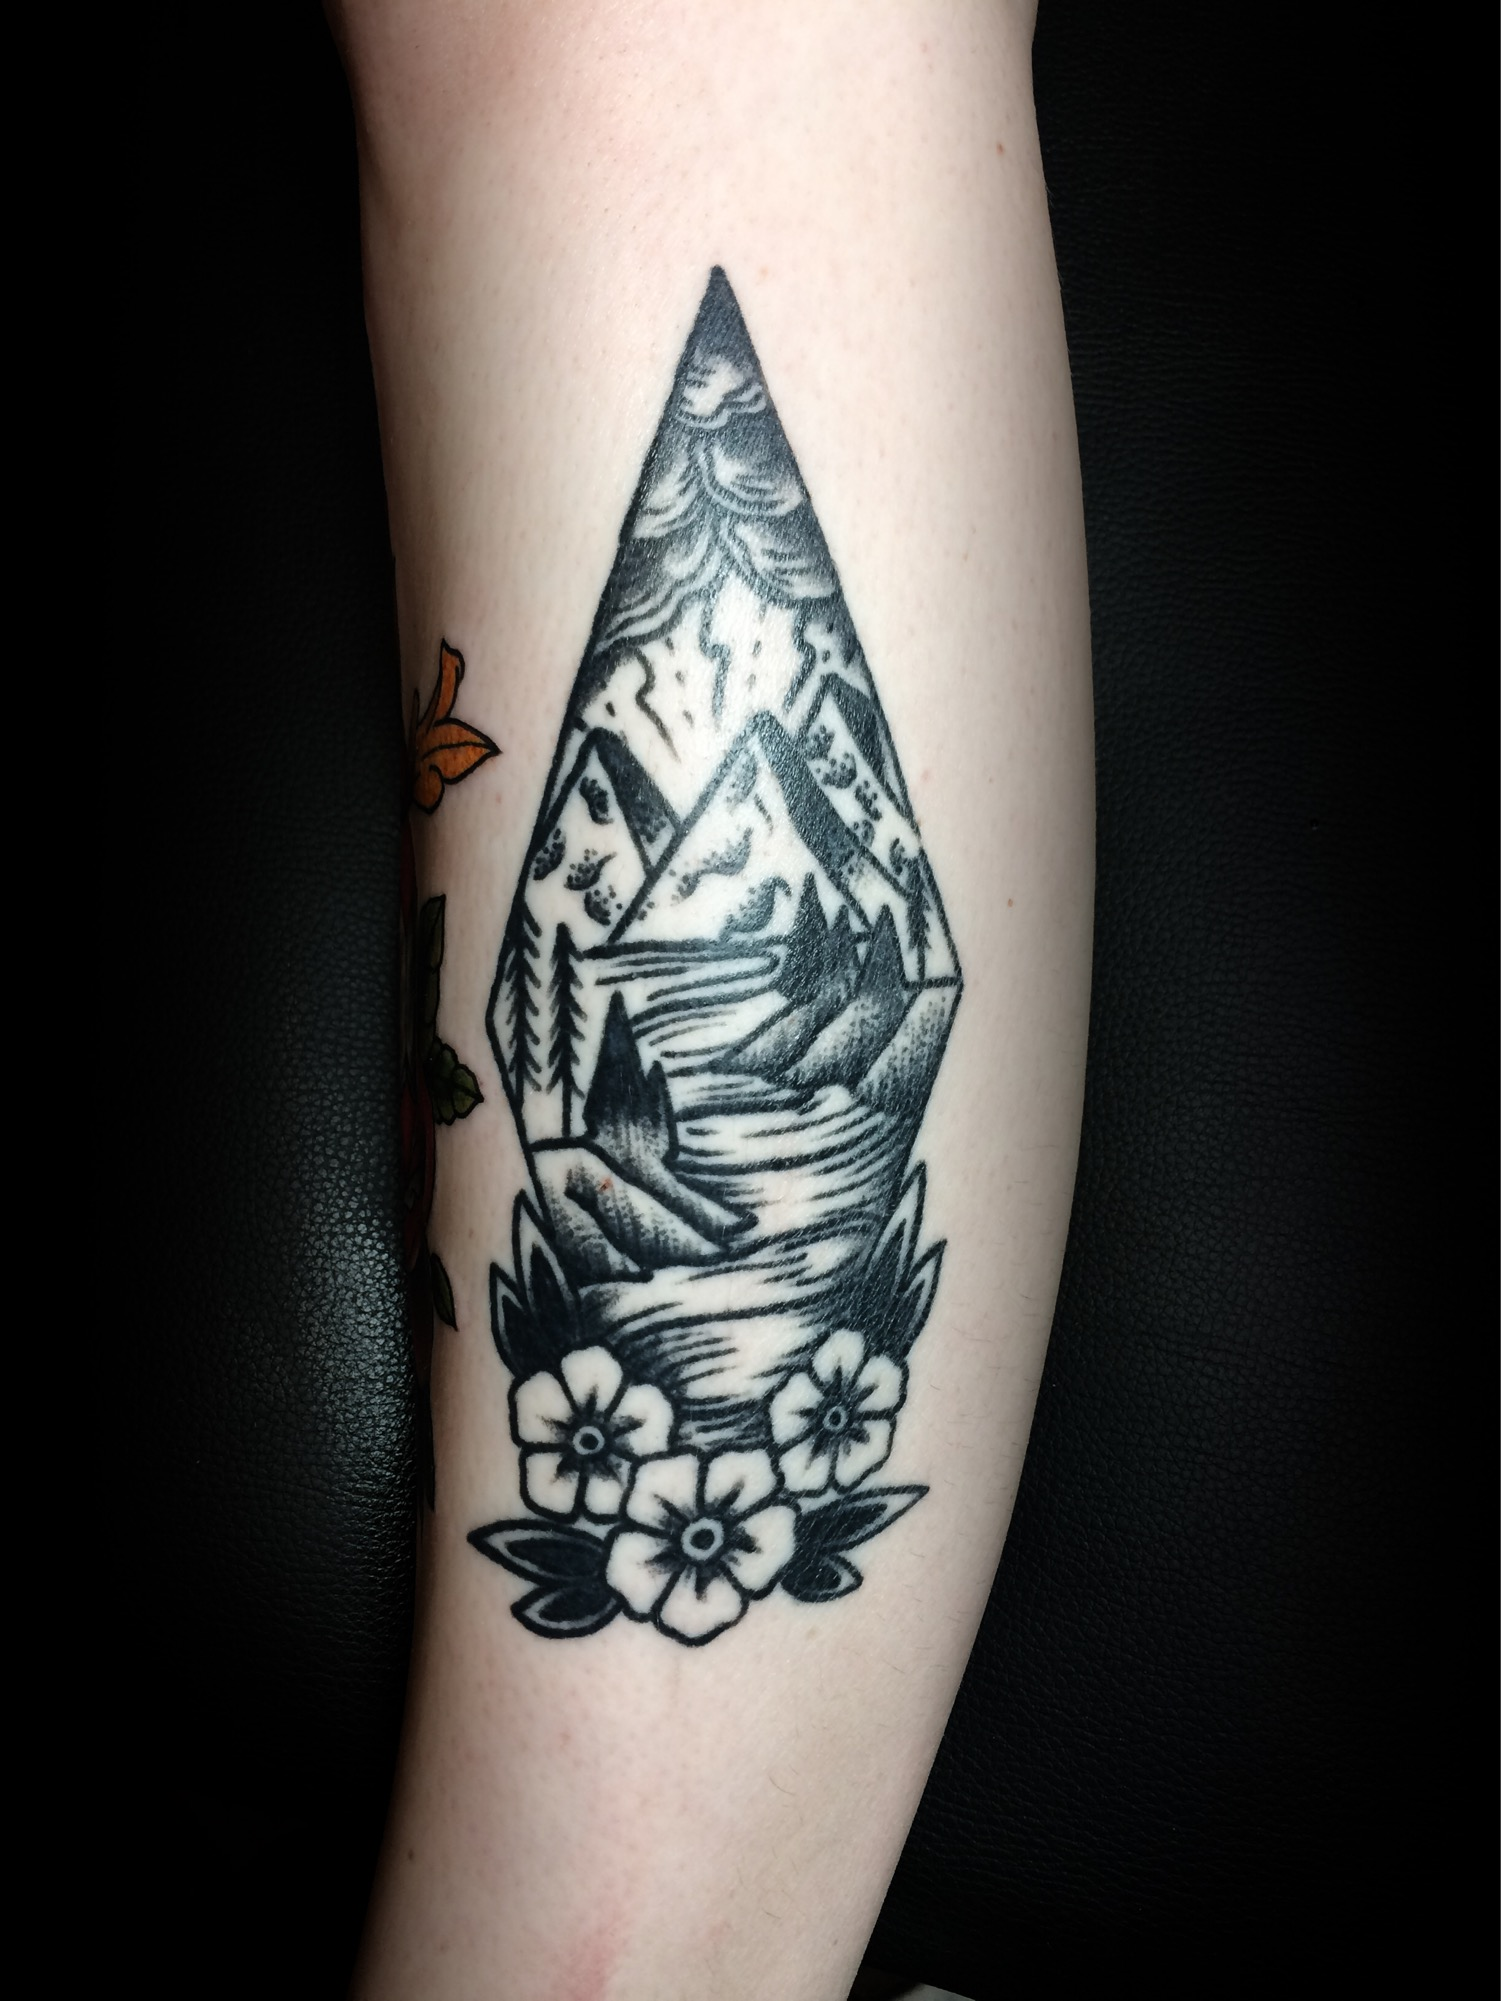 Blackwork-Tattoo-Berlin-Ivan-Herrera-Diamant